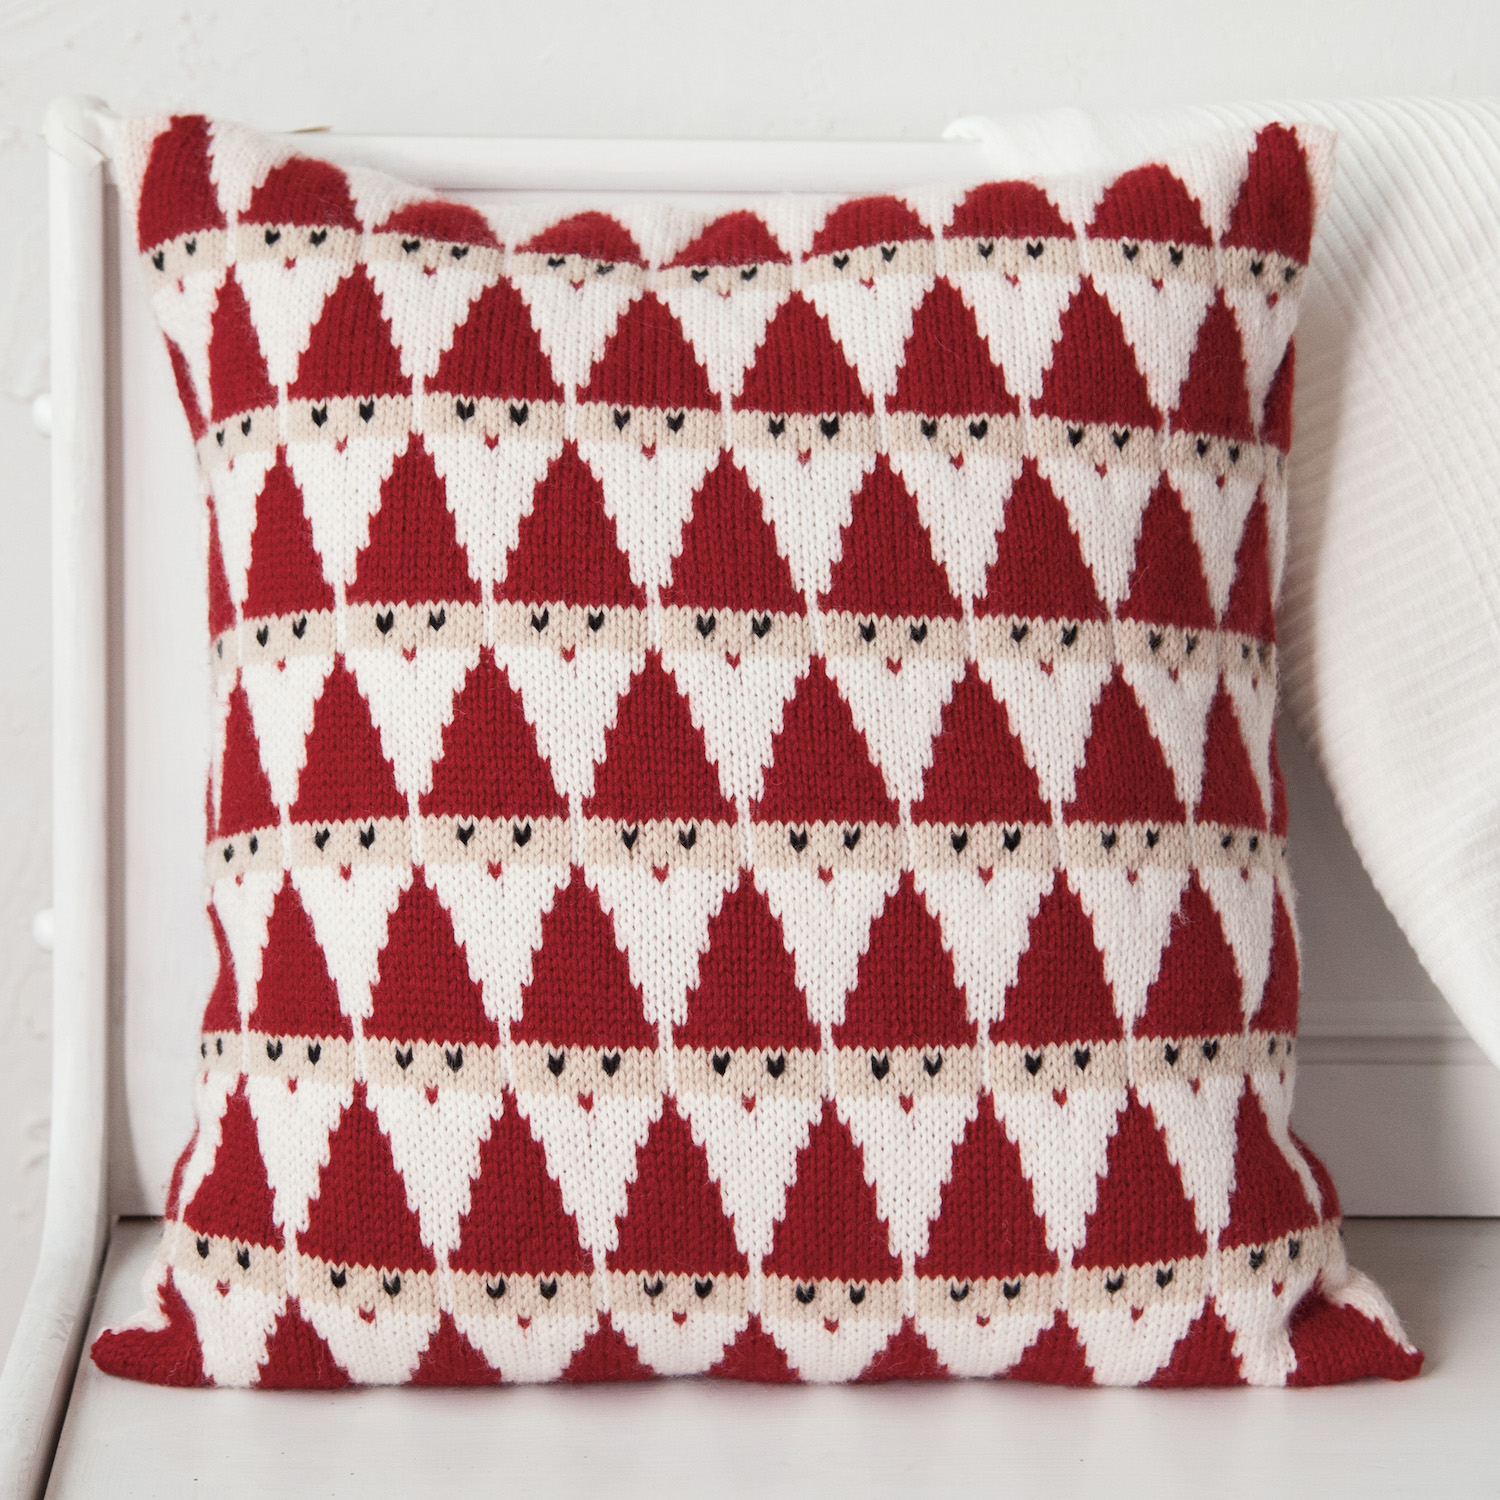 Just crafty enough new knitting pattern santa pillow living in minnesota and being of swedish descent my christmas dcor tends to be very scandinavian in design red hearts flickering candles straw goats bankloansurffo Gallery